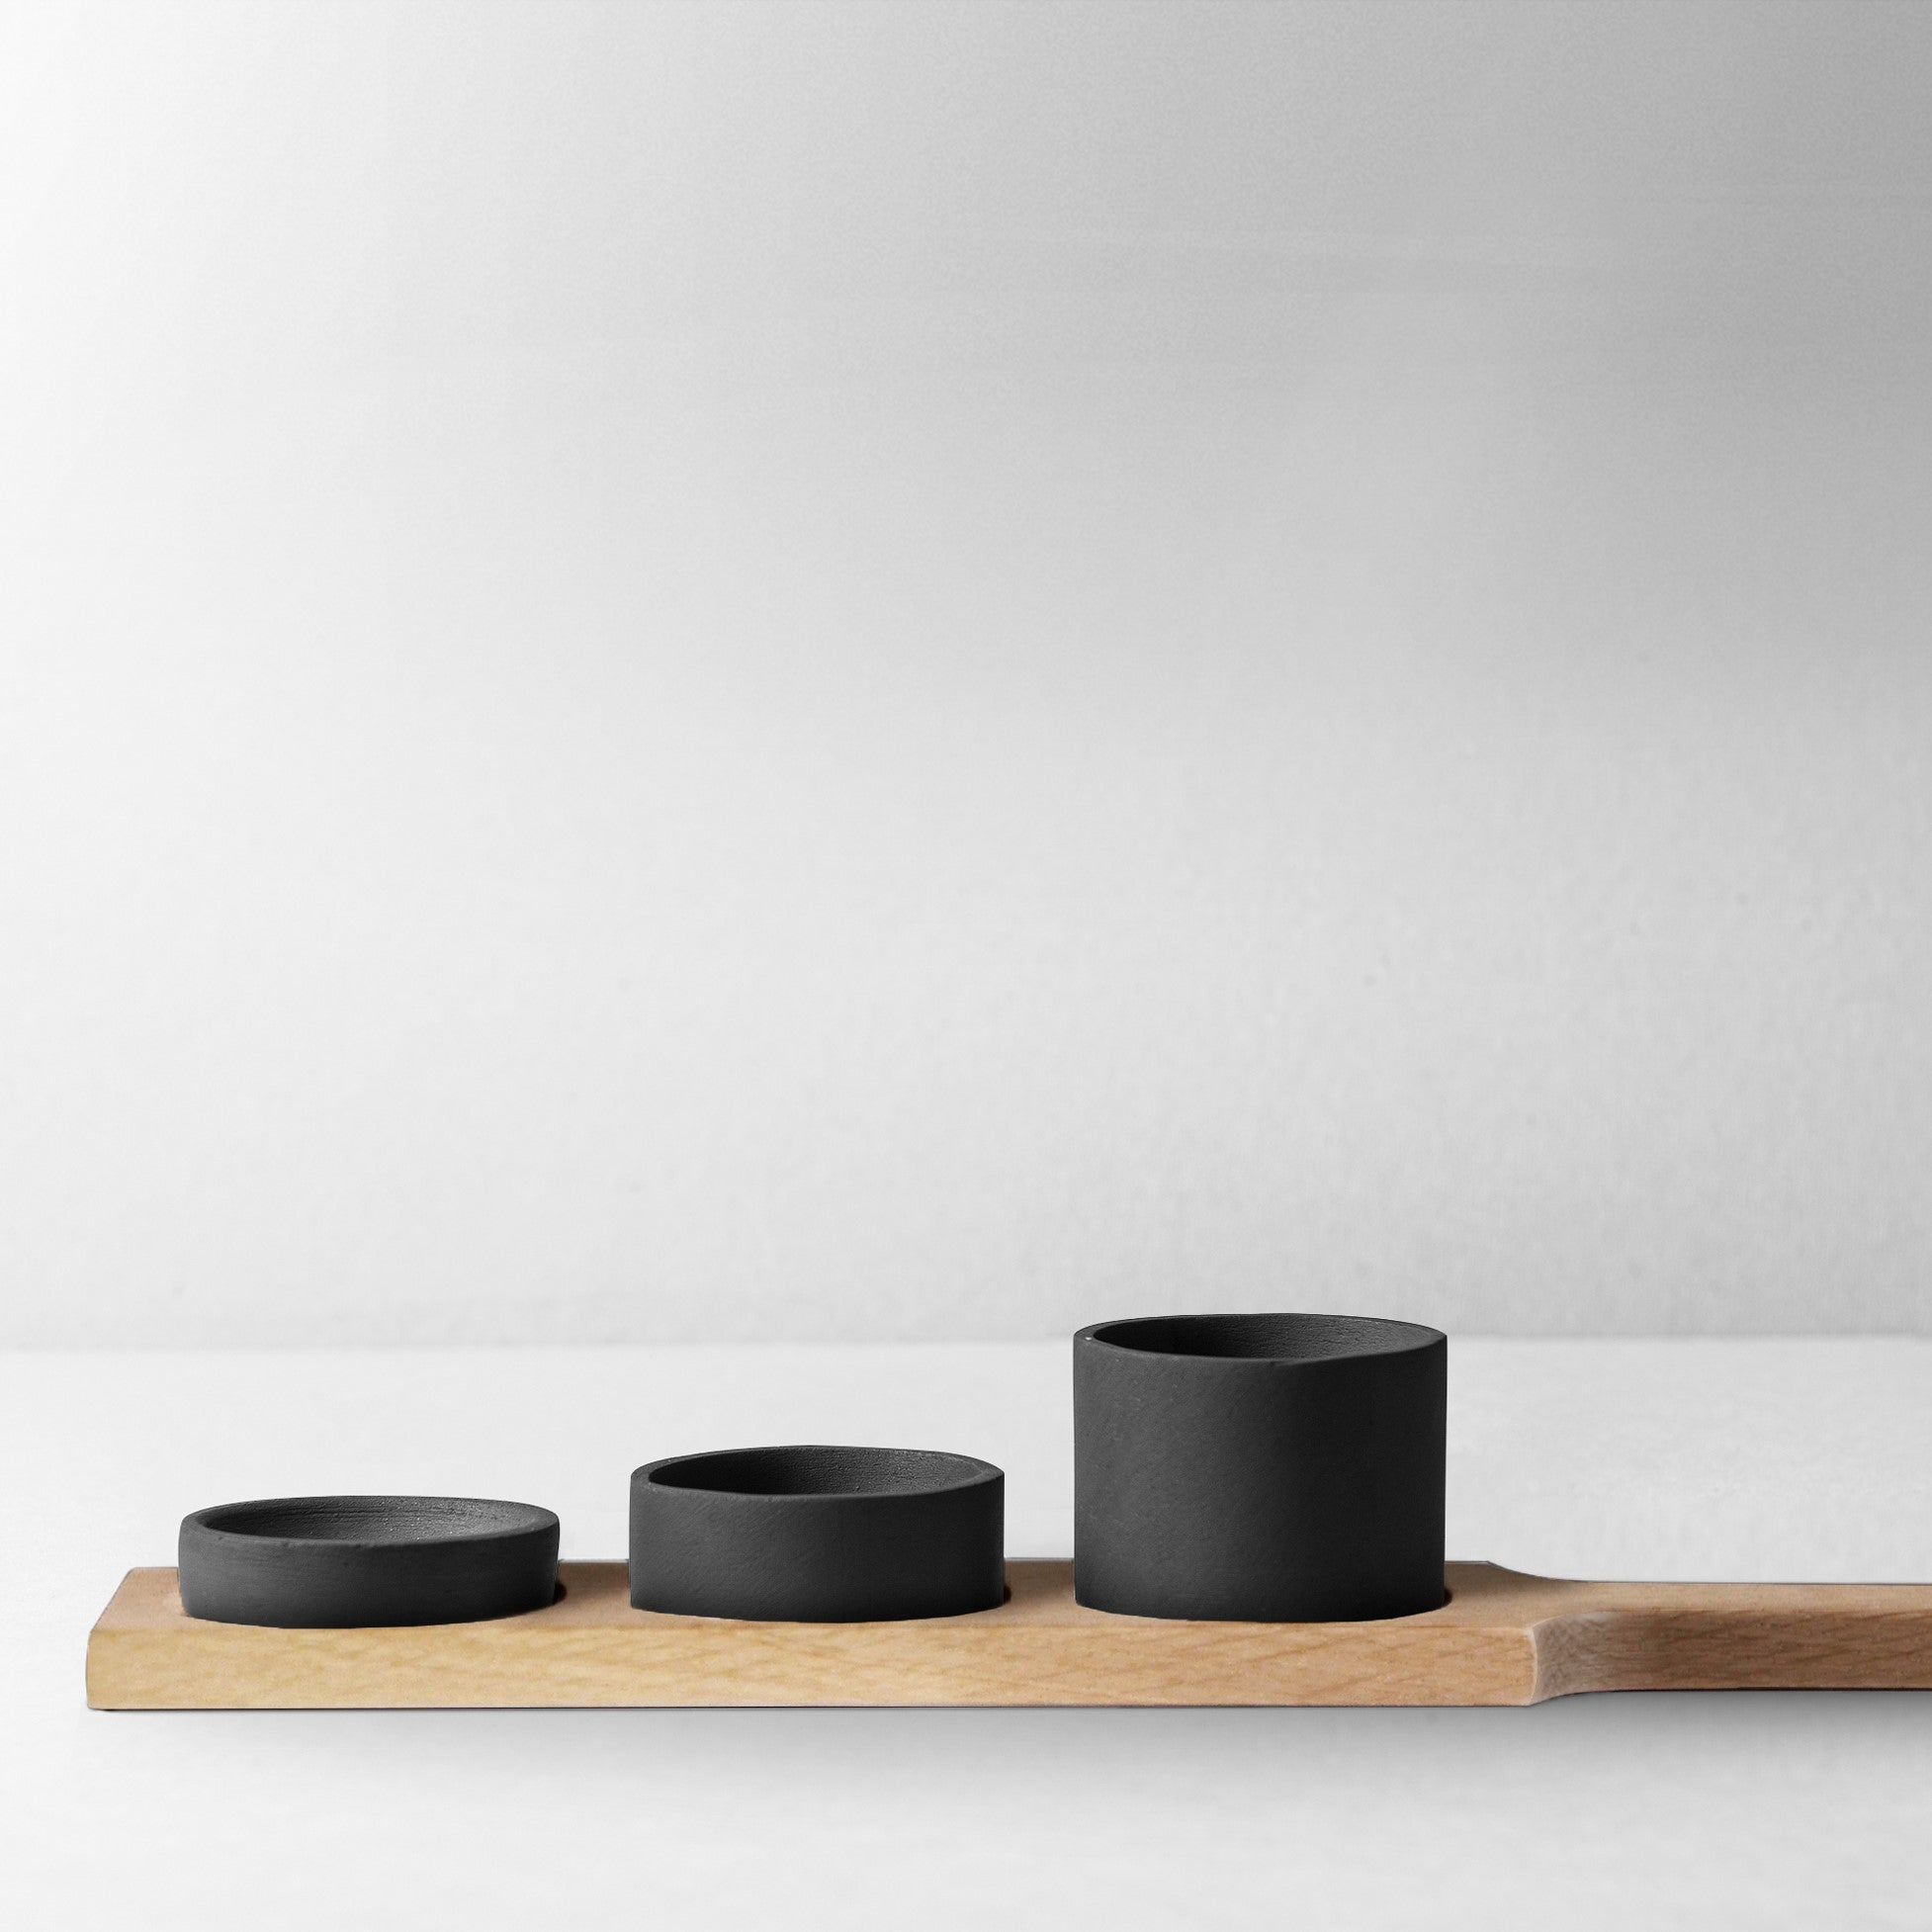 Rubble Interior Design Marketplace, Cibo Black Ceramic and Wood Cannister by Bisarro Ceramics